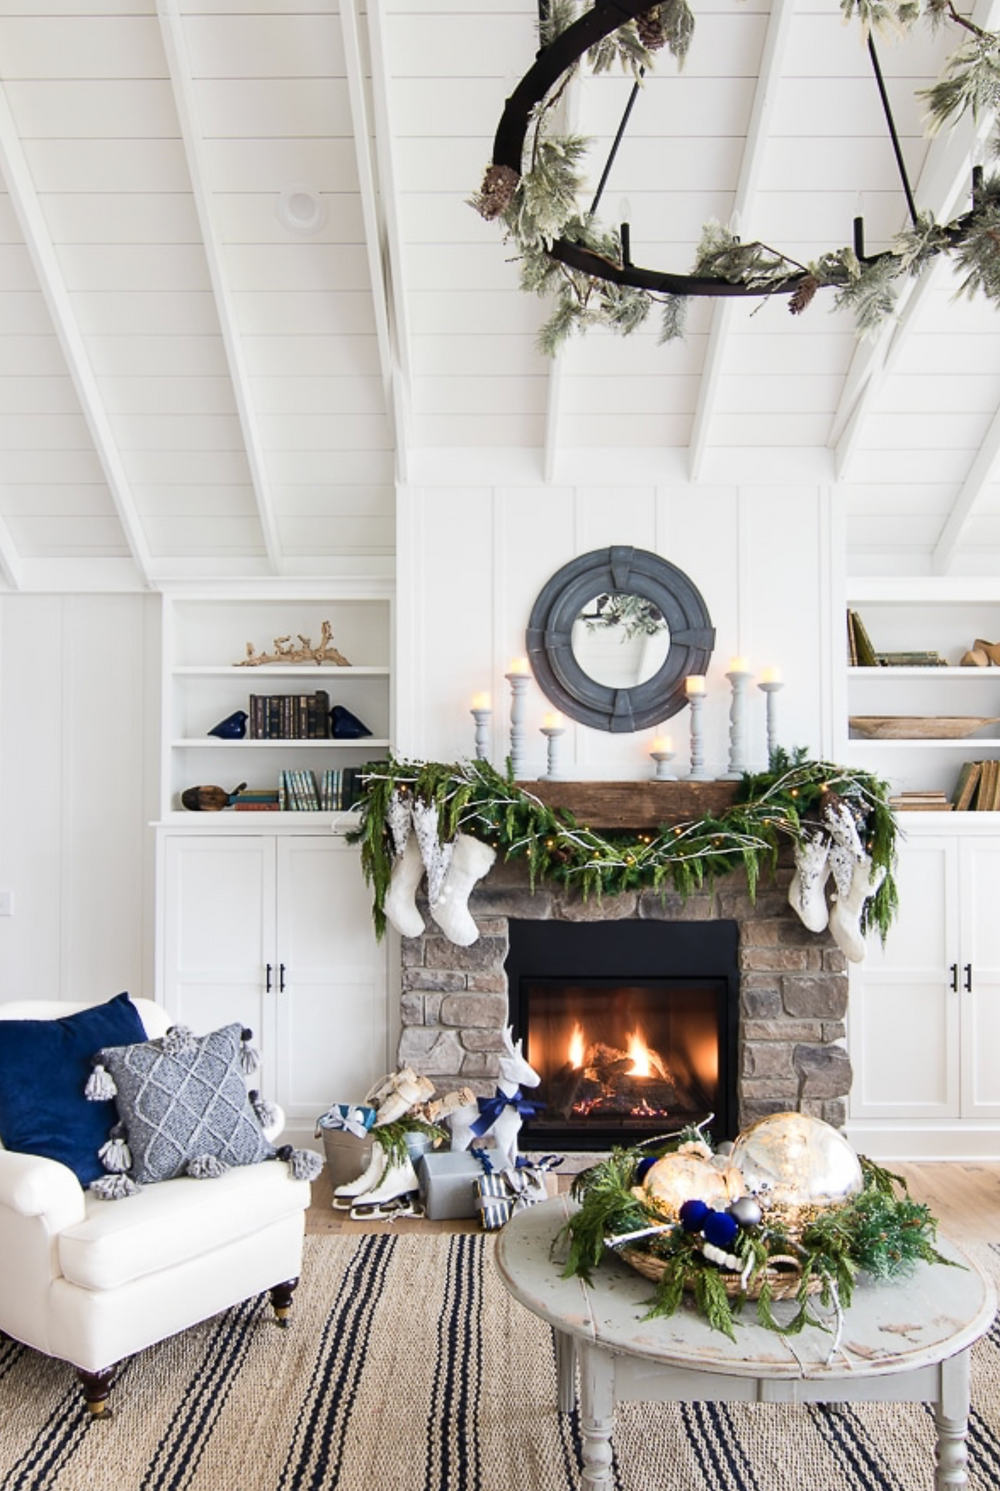 A white Christmas holiday fireplace with a mantel decorated with greenery, bottle brush trees and stockings for a stylish and modern look.